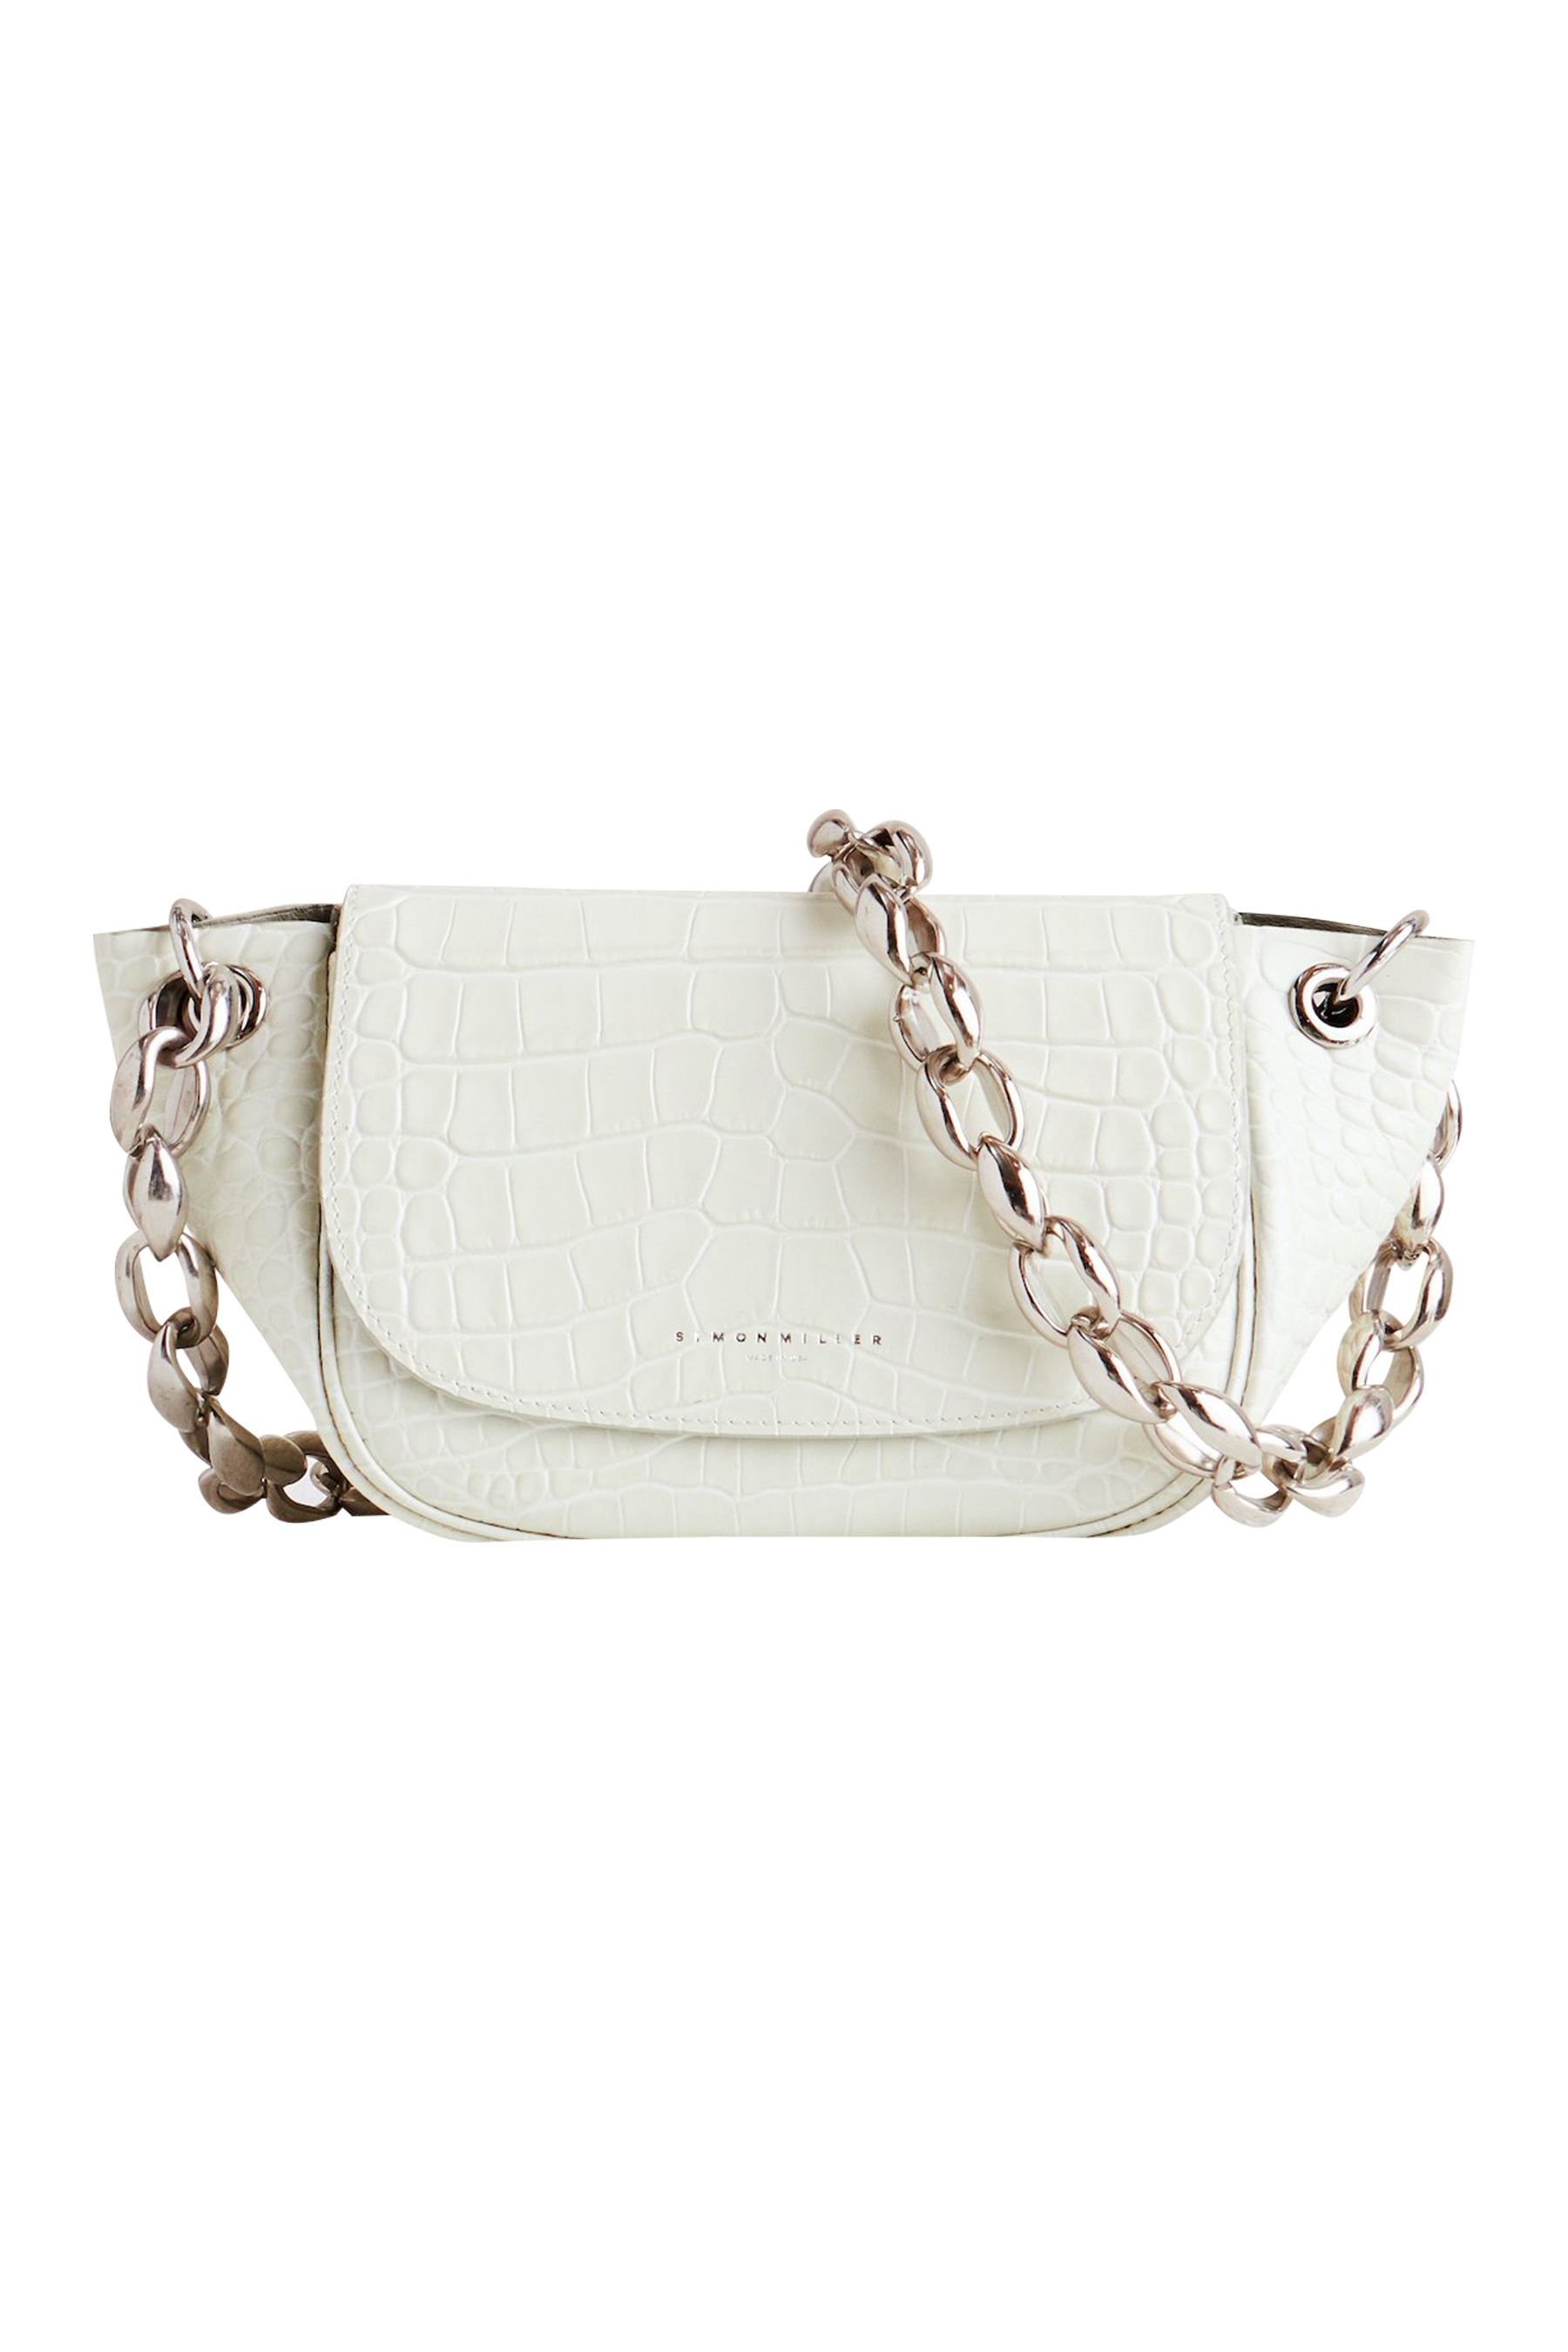 Bend Bag in White Croc by Simon Miller - 1